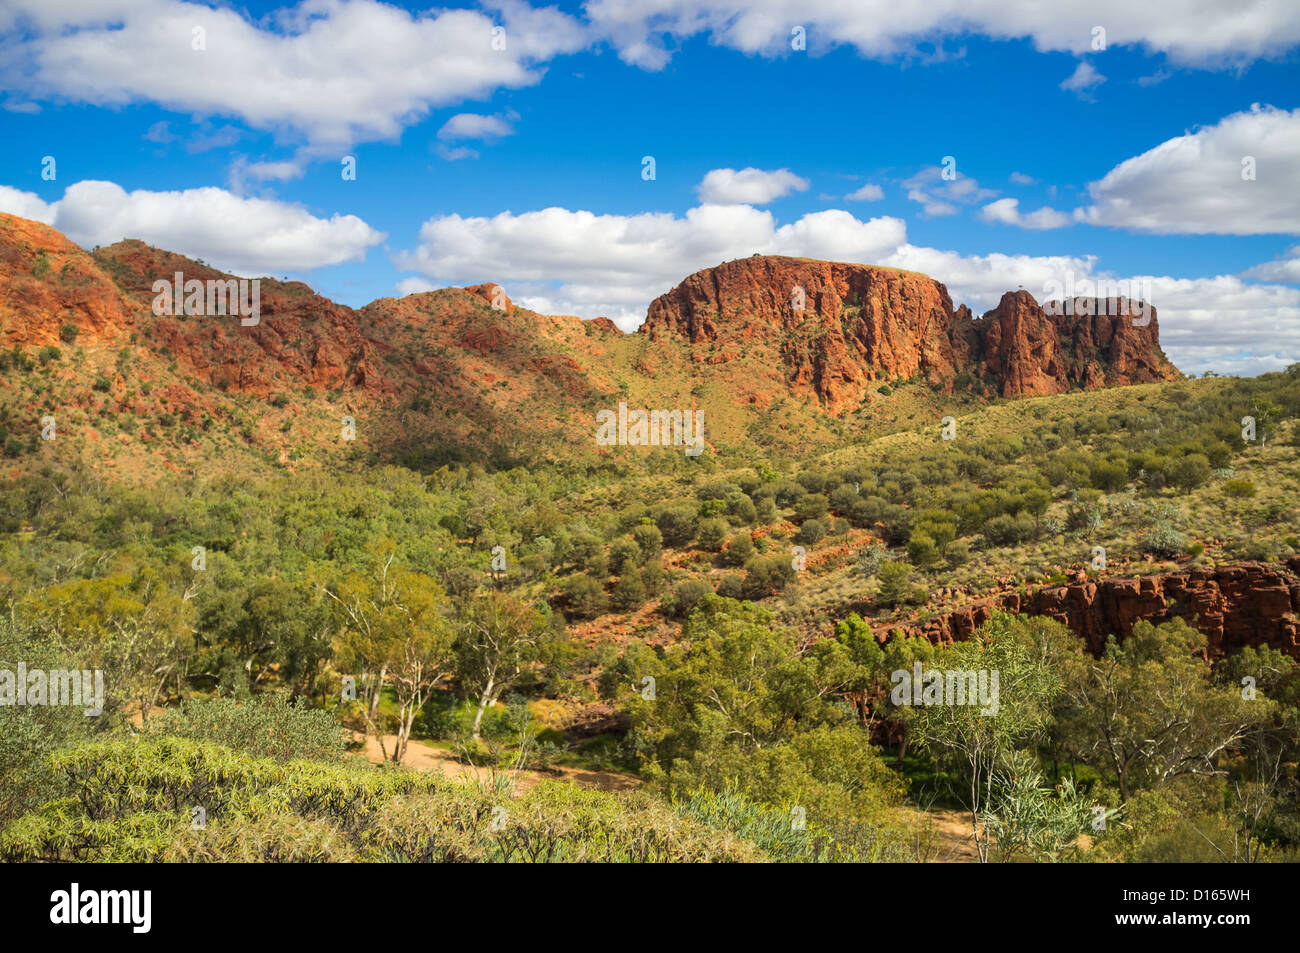 Rugged red cliffs at Trephina Gorge, East MacDonnell Ranges, Northern Territory in the Red Centre of Central Australia - Stock Image